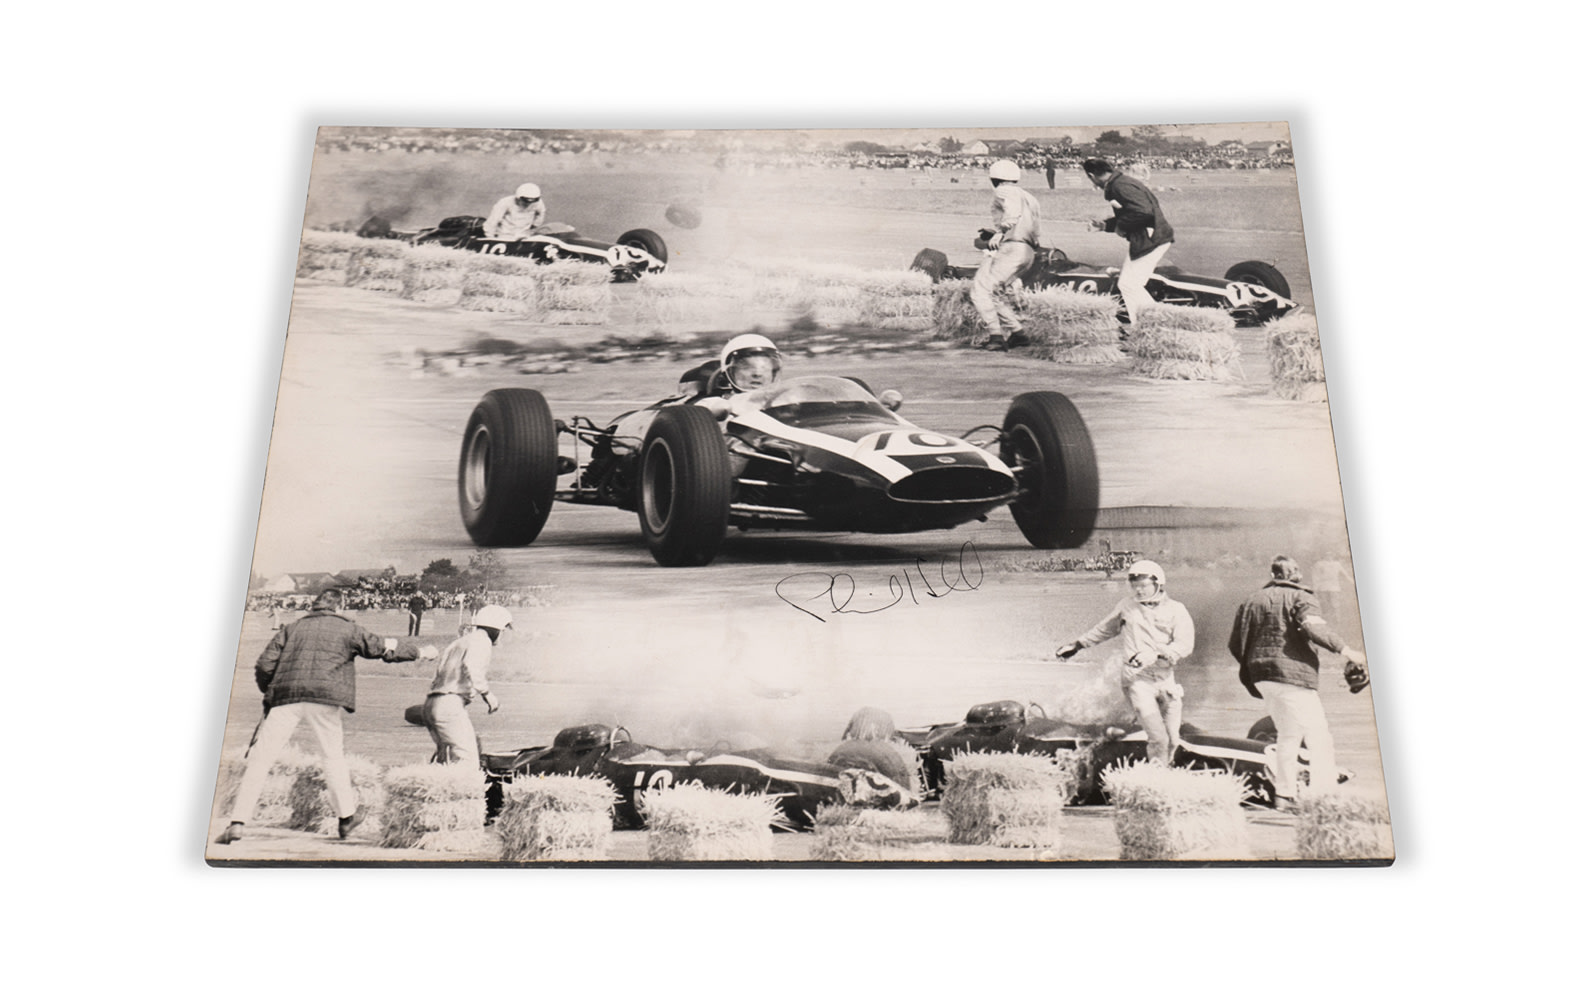 1964 Austrian Grand Prix Photo Montage of Phil Hill's Cooper Accident, Signed